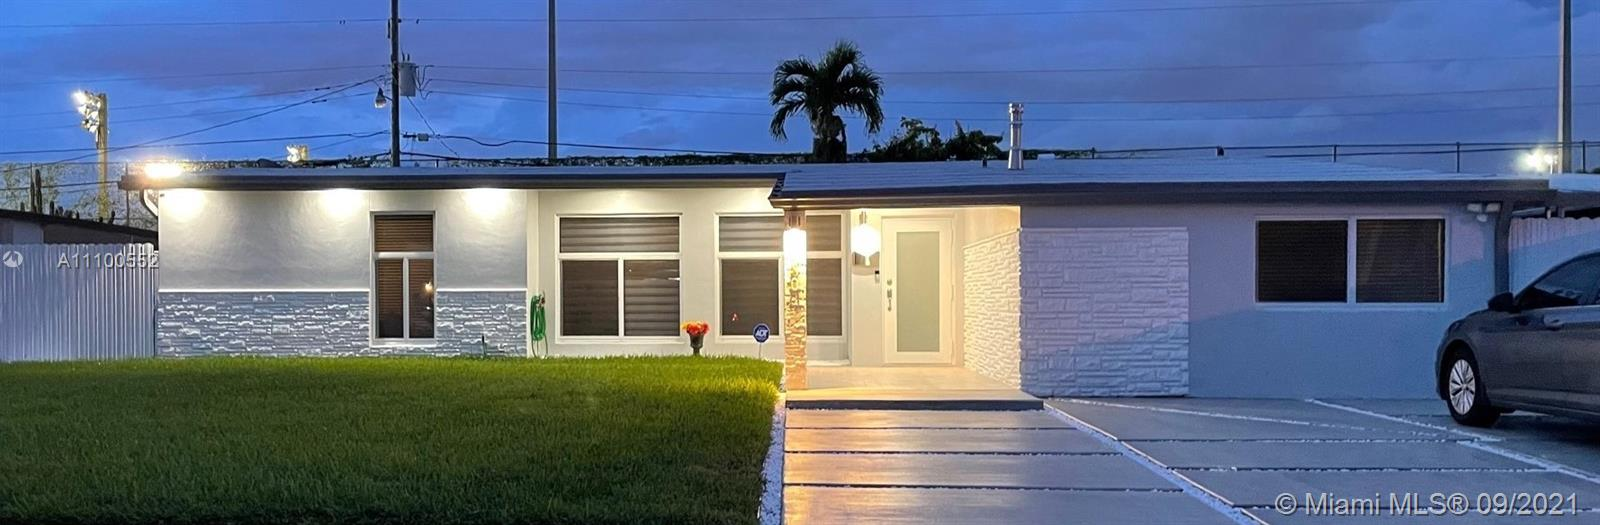 Single Family Home For Sale WESTHAVEN HGTS 2ND ADDN1,759 Sqft